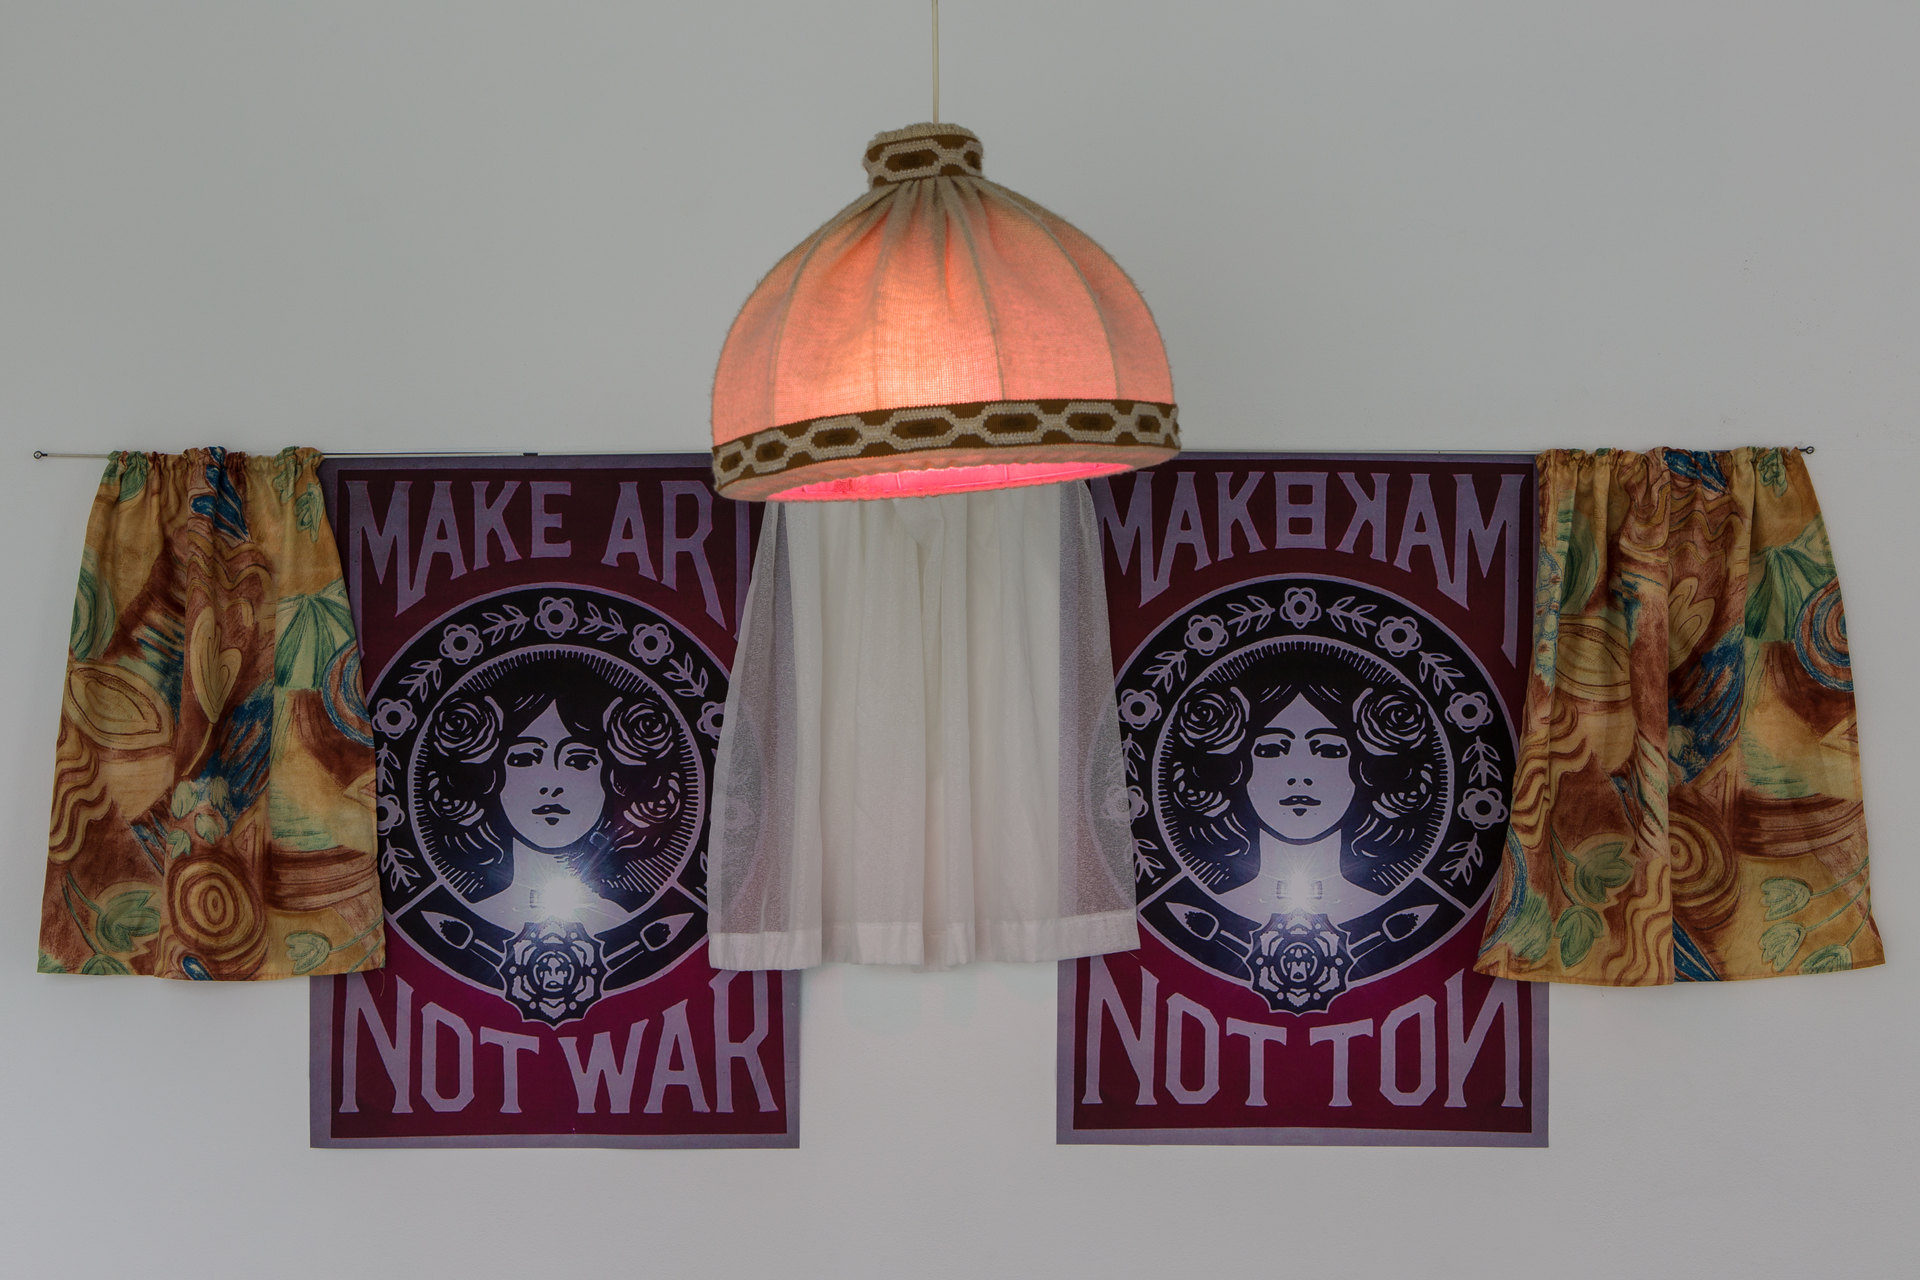 Nancy Halt 'Make art not war, one to four' (Detail), 2018, No, No, No, No, 2018